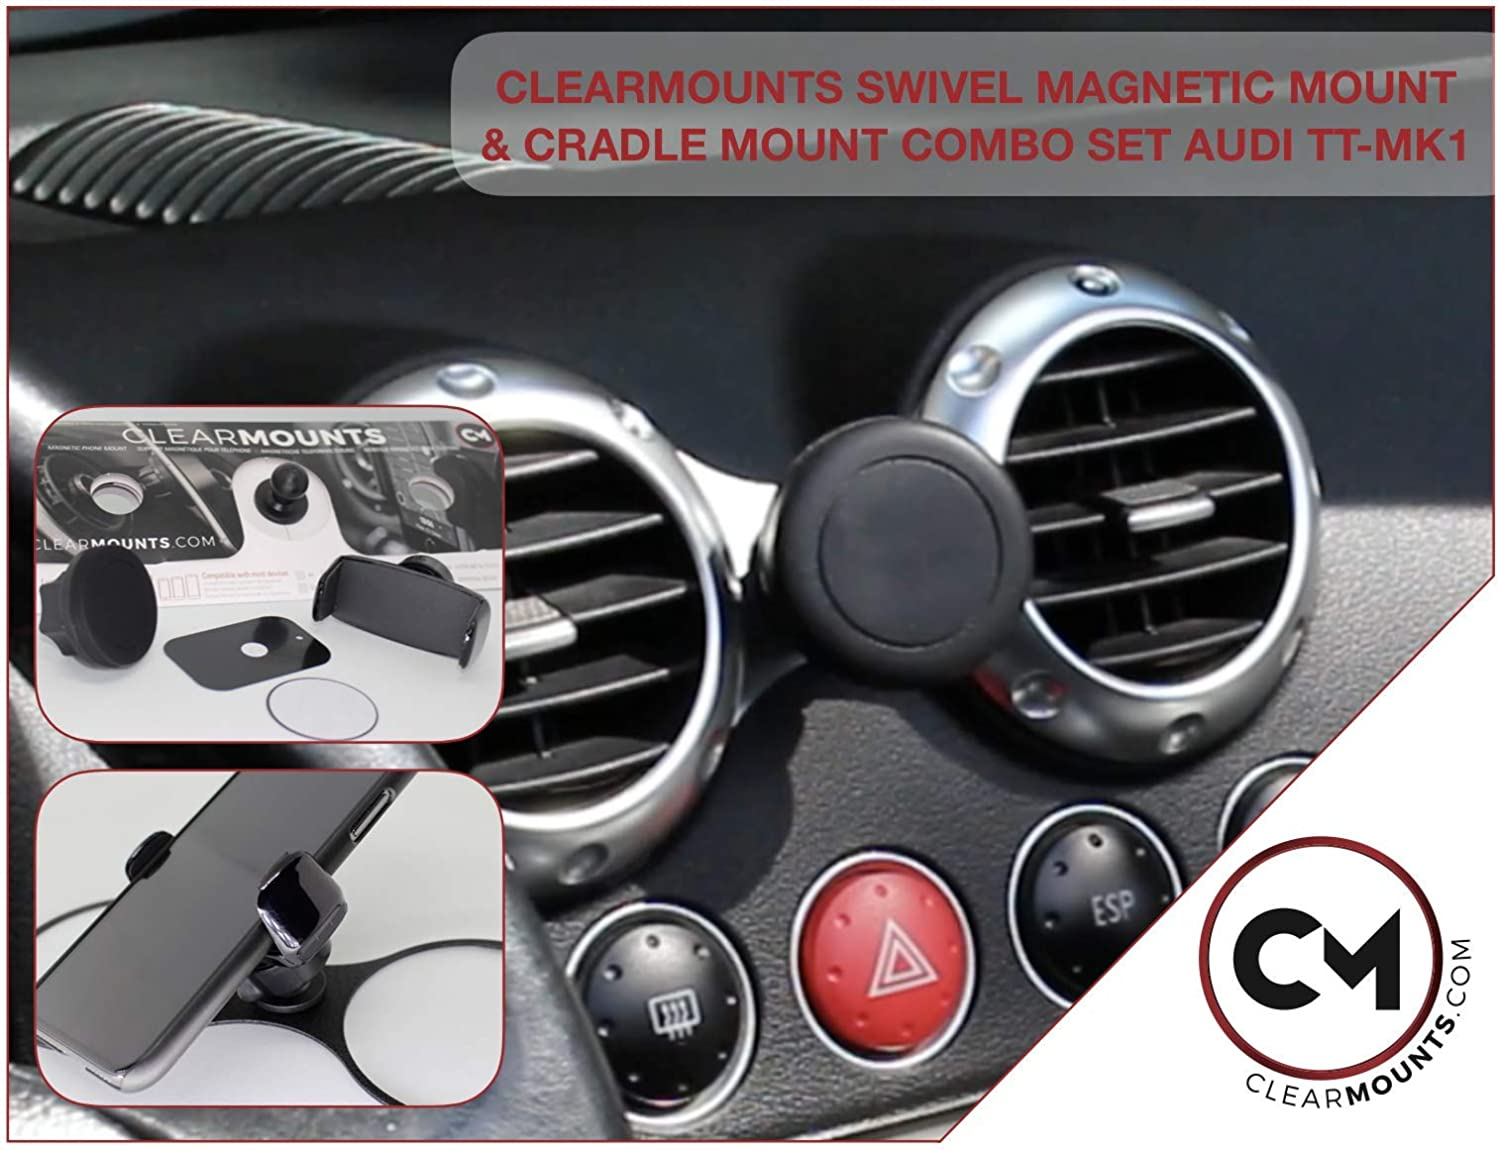 CLEARMOUNTS Audi Phone Holder 360 Degree Swivel Magnetic Mounts /& Cradle Mount Combo 2015-2020 Audi TT Designed for